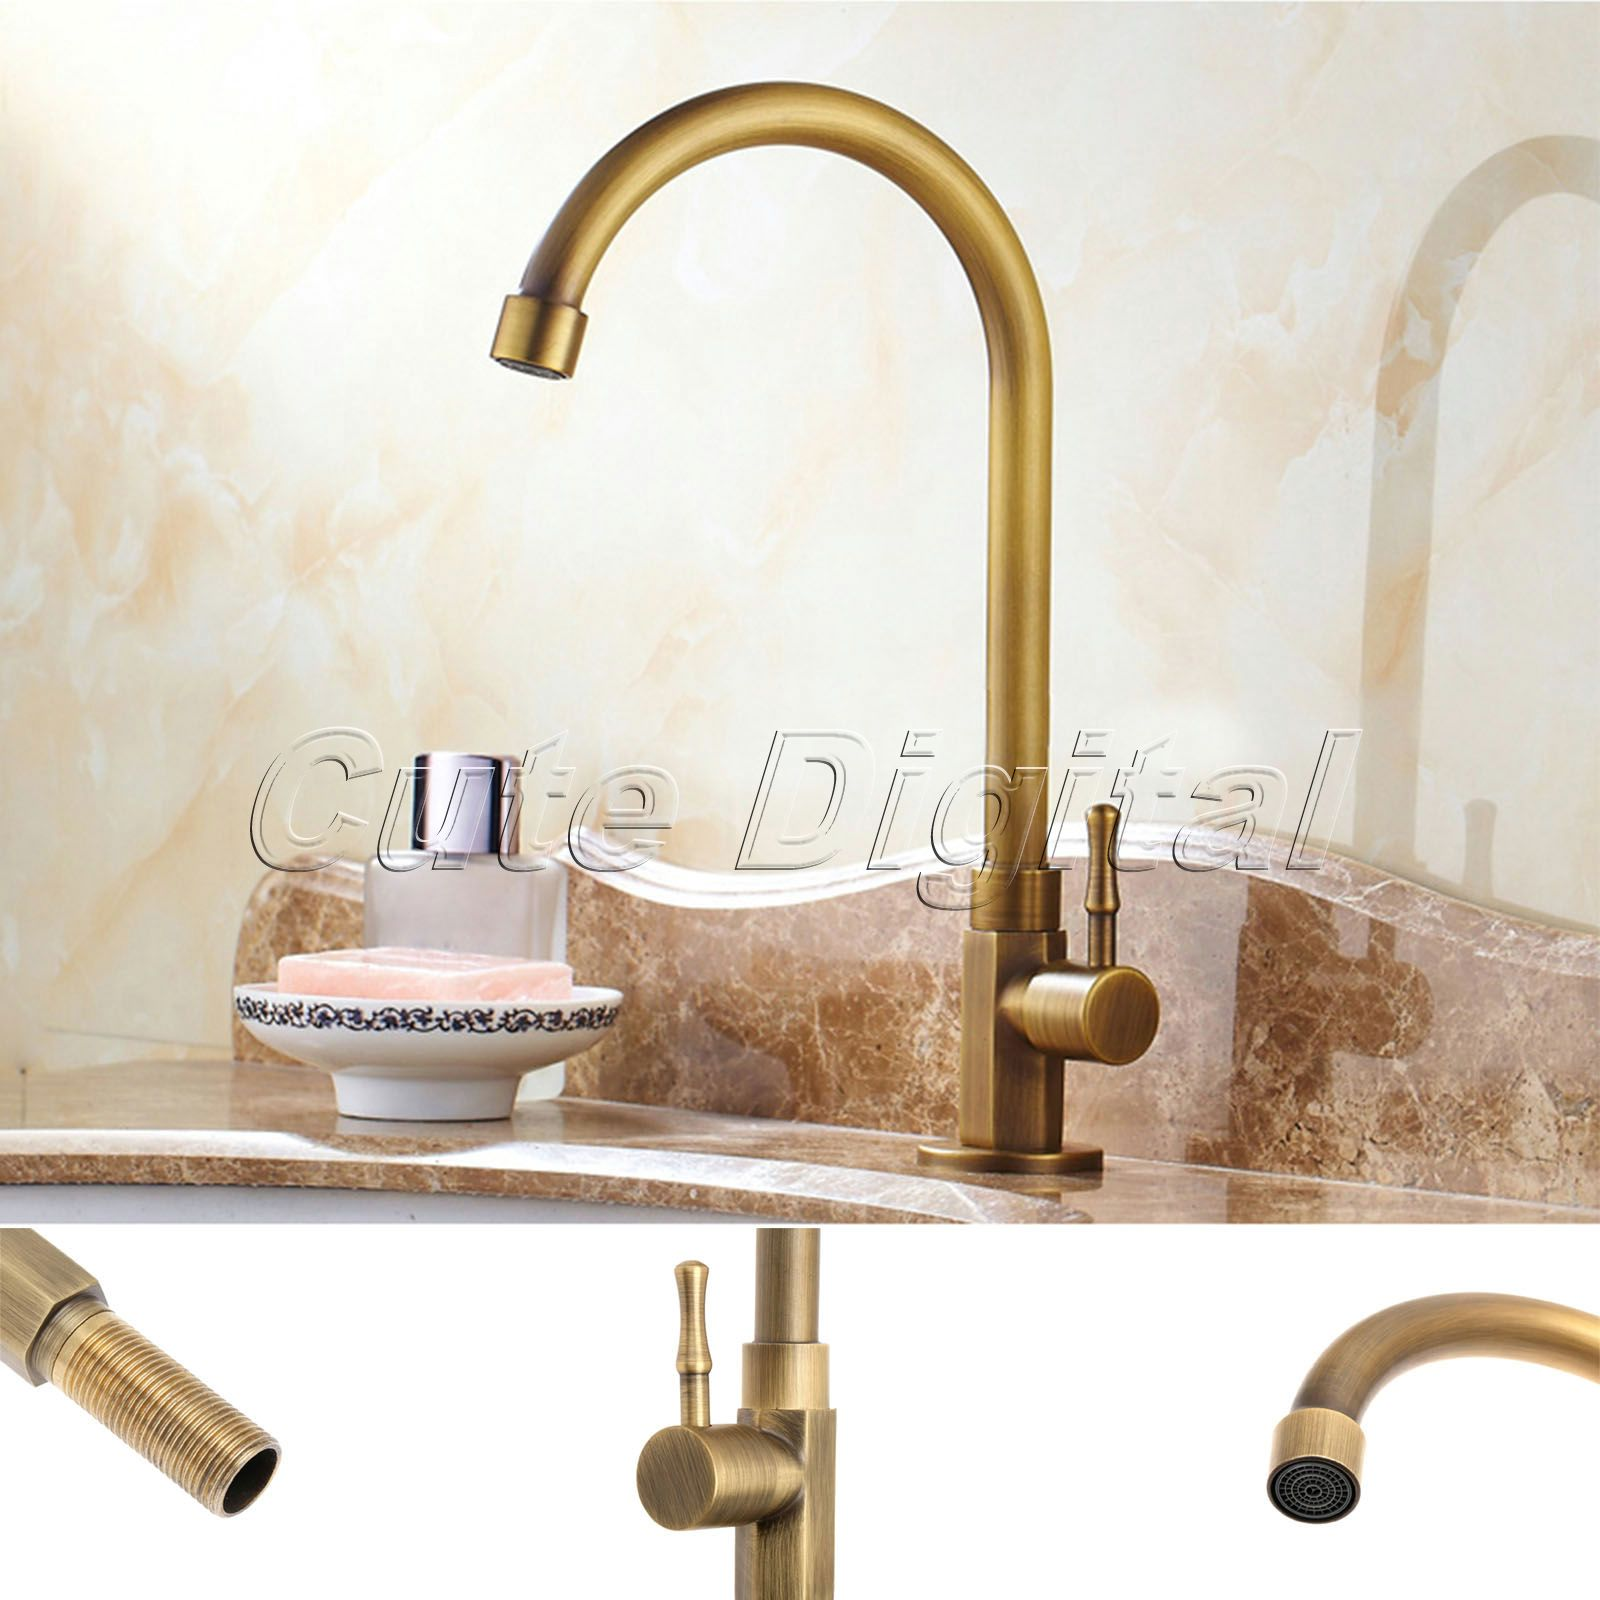 sinks bathtub sink waterfall tub for mount faucets faucet bathroom wall vessel